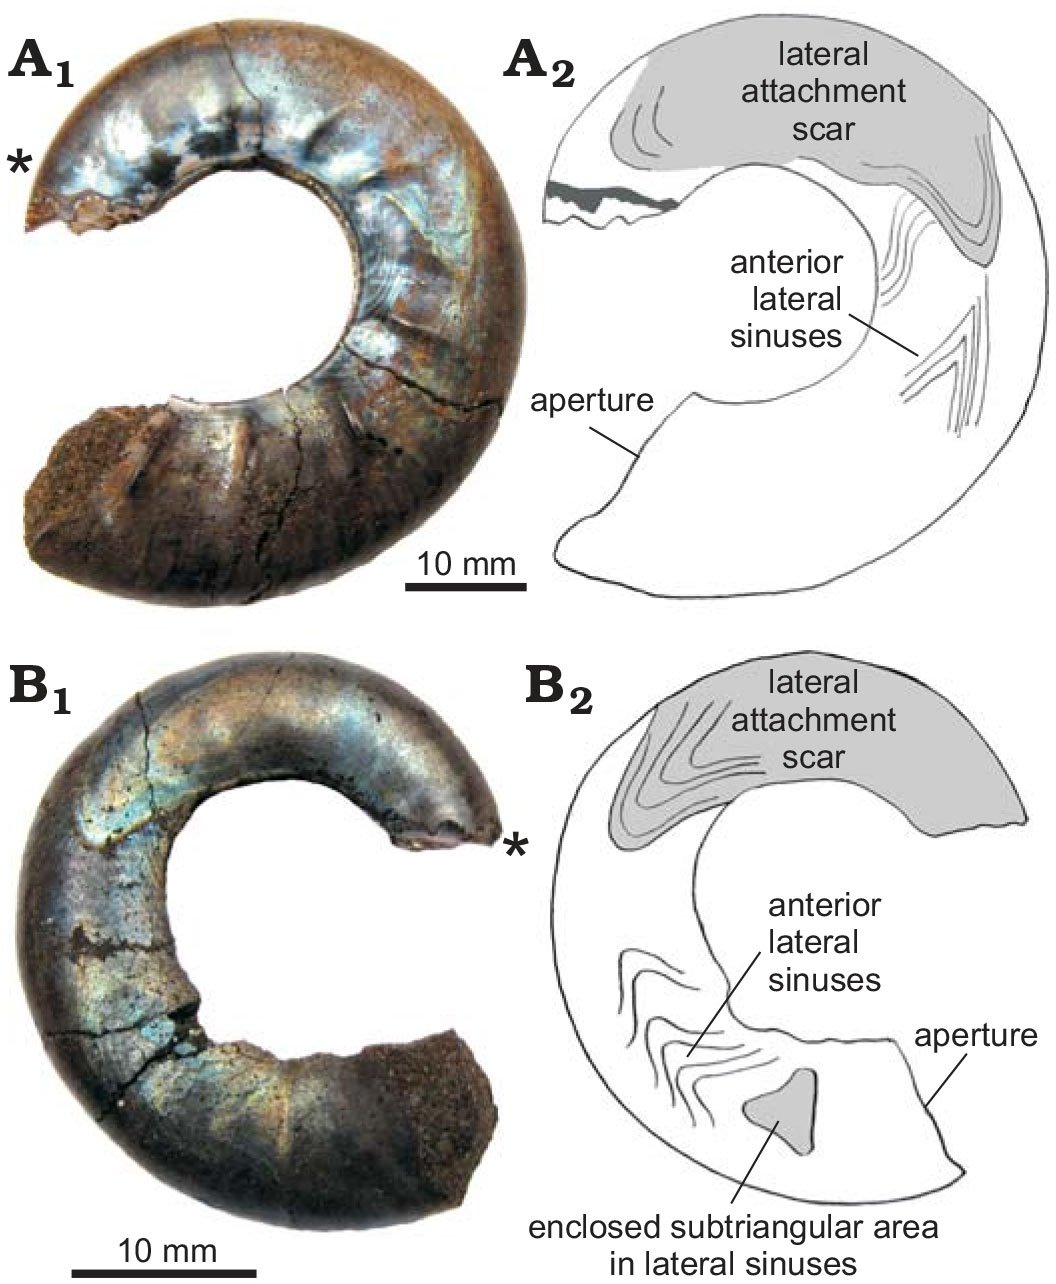 The Soft Tissue Attachment Scars In Late Jurassic Ammonites From